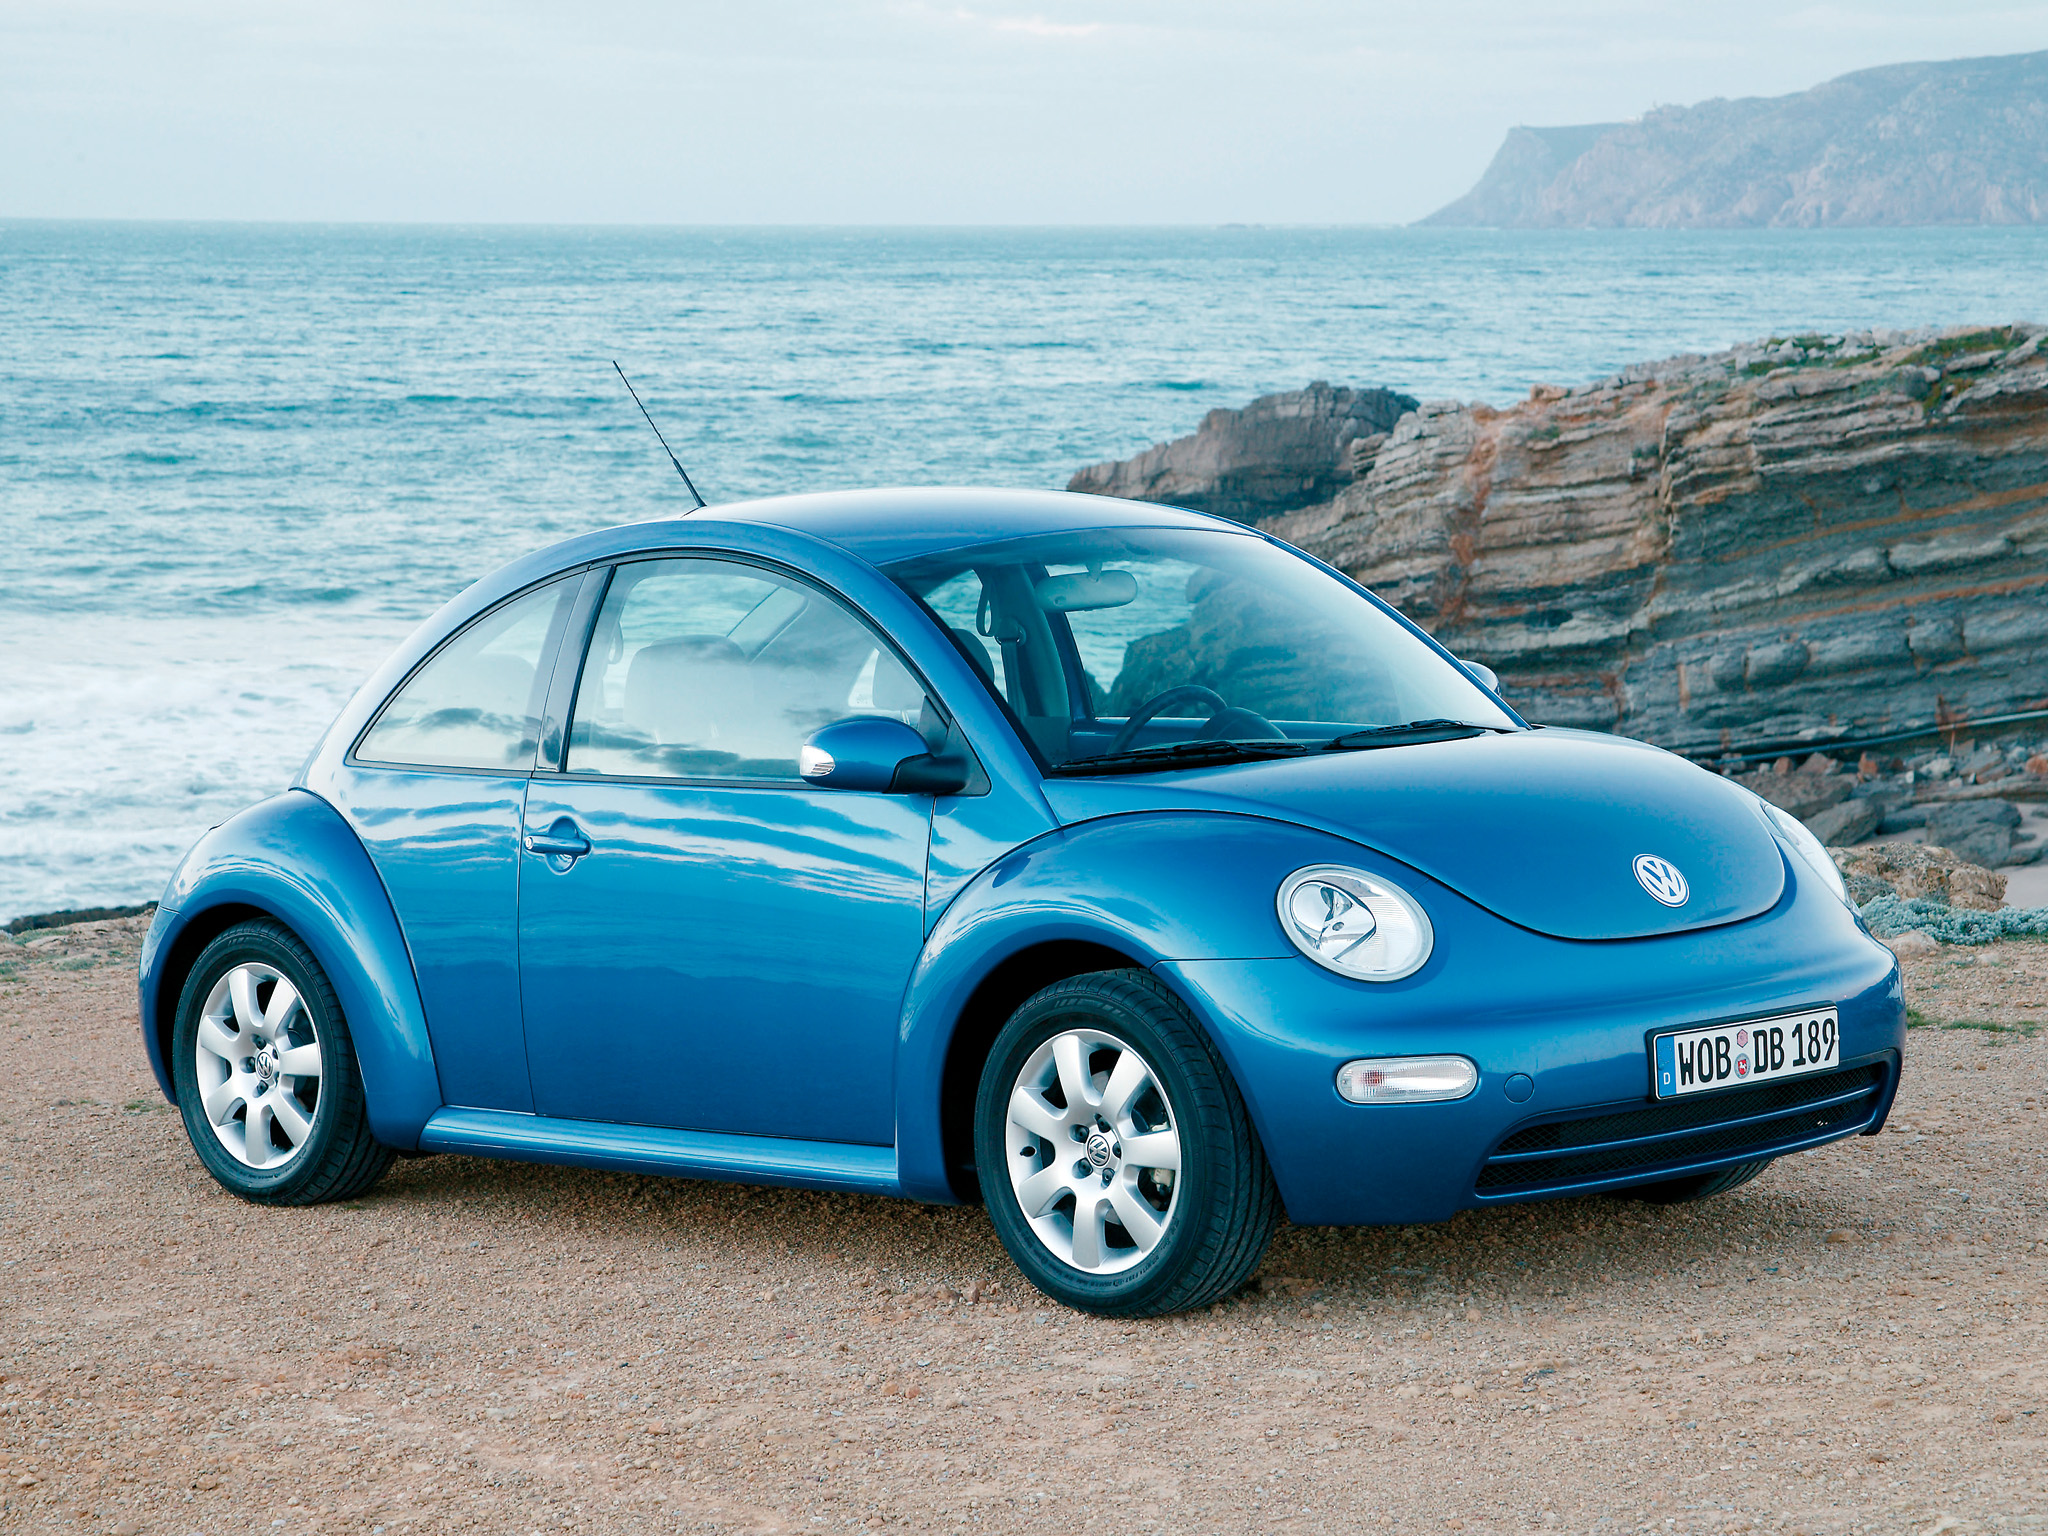 2005 Volkswagen New Beetle photo - 2